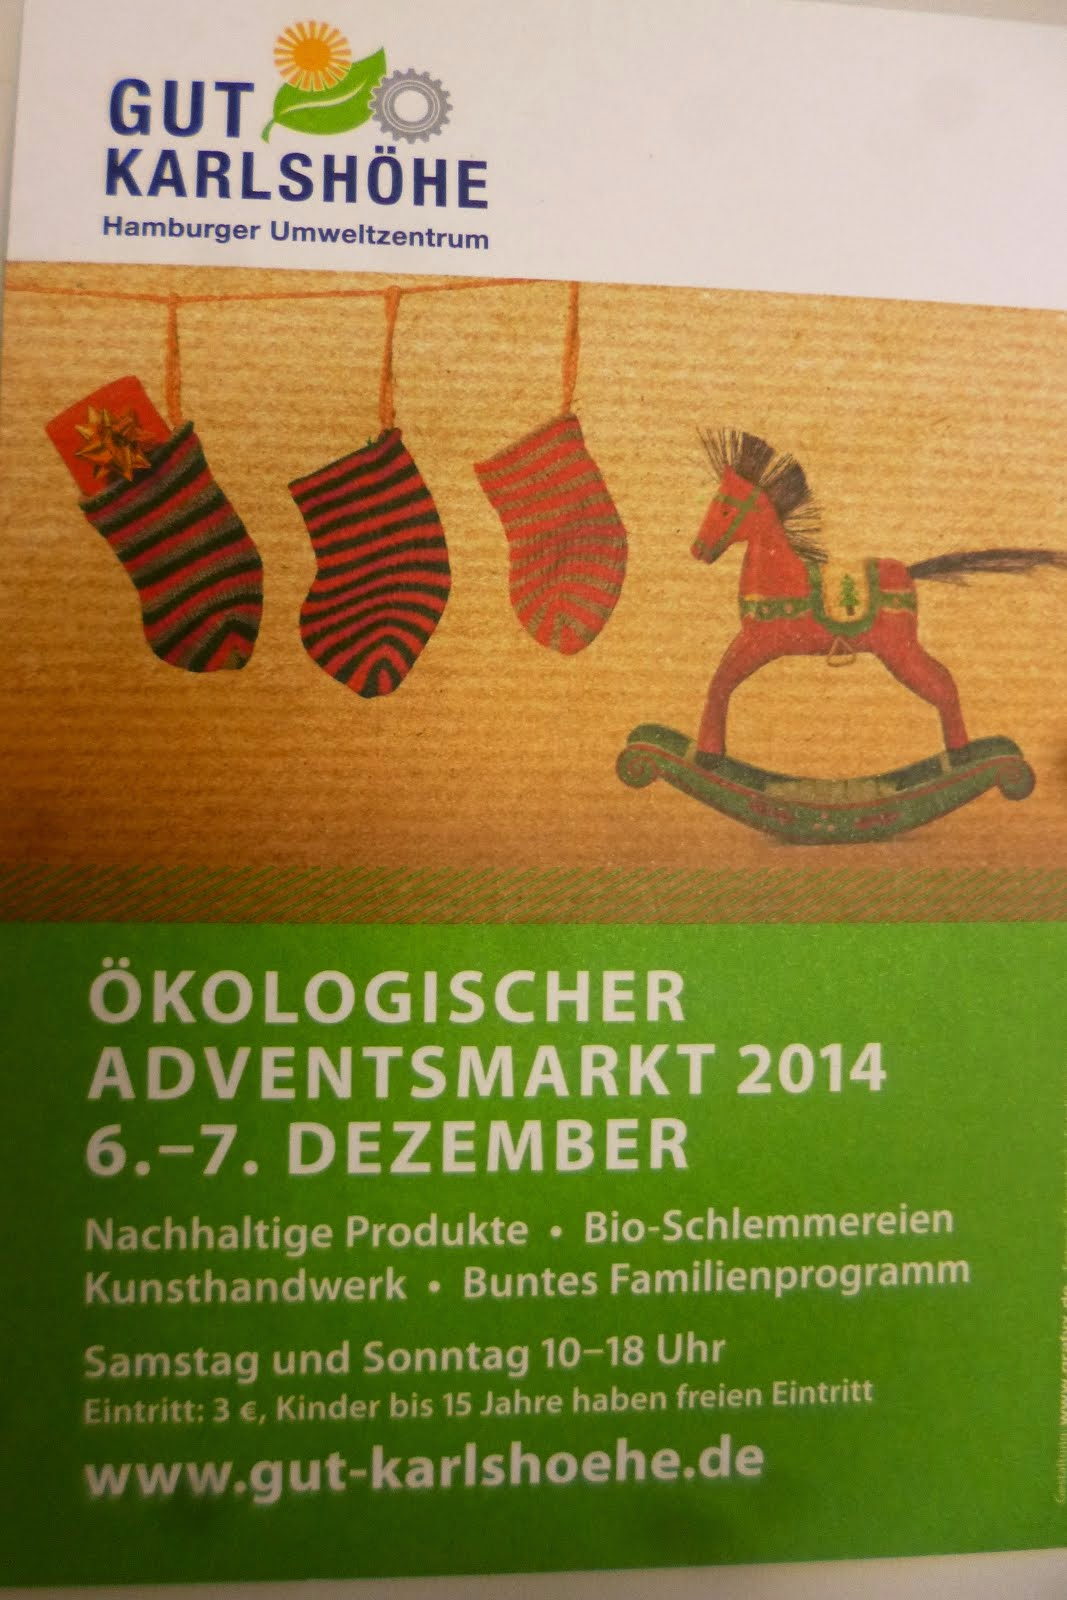 Das war der Adventsmarkt 2014